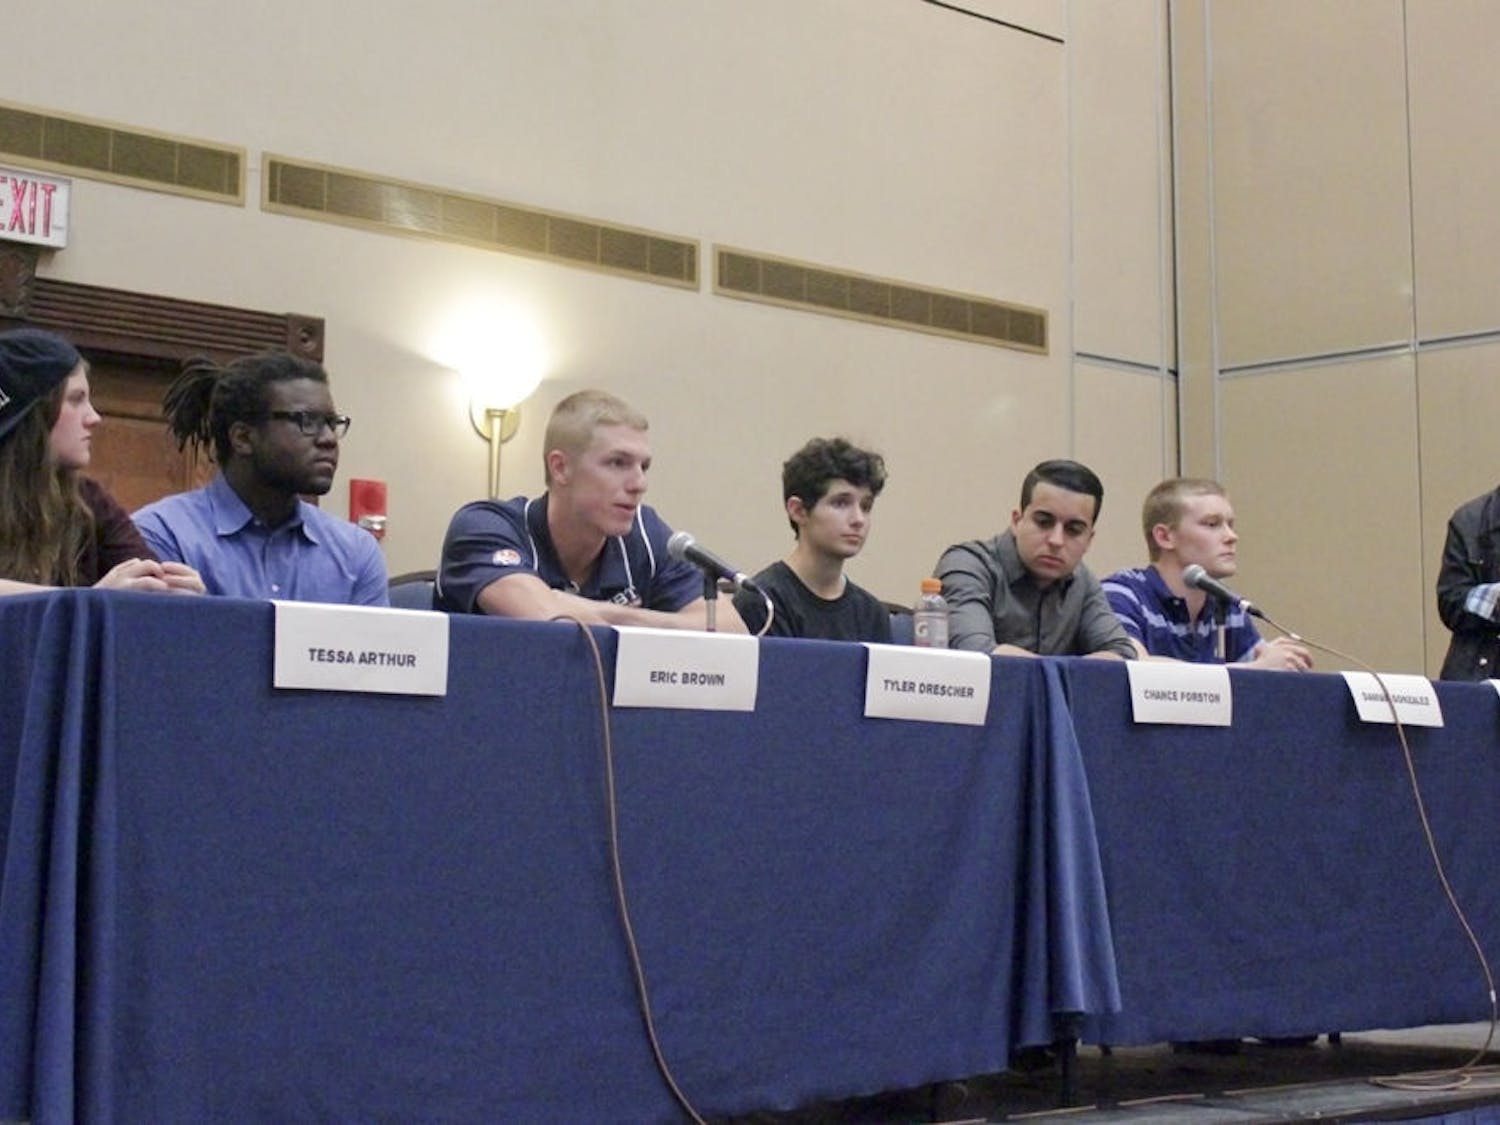 From left, Tessa Arthur, Eric Brown, Tyler Drescher, Chance Forston, Damian Gonzales, Scott Strauss and LB Hannahs participate in Women's History Month's Masculine Mystique panel. The group discussed how concepts of masculinity have influenced their lives and gender expressions.